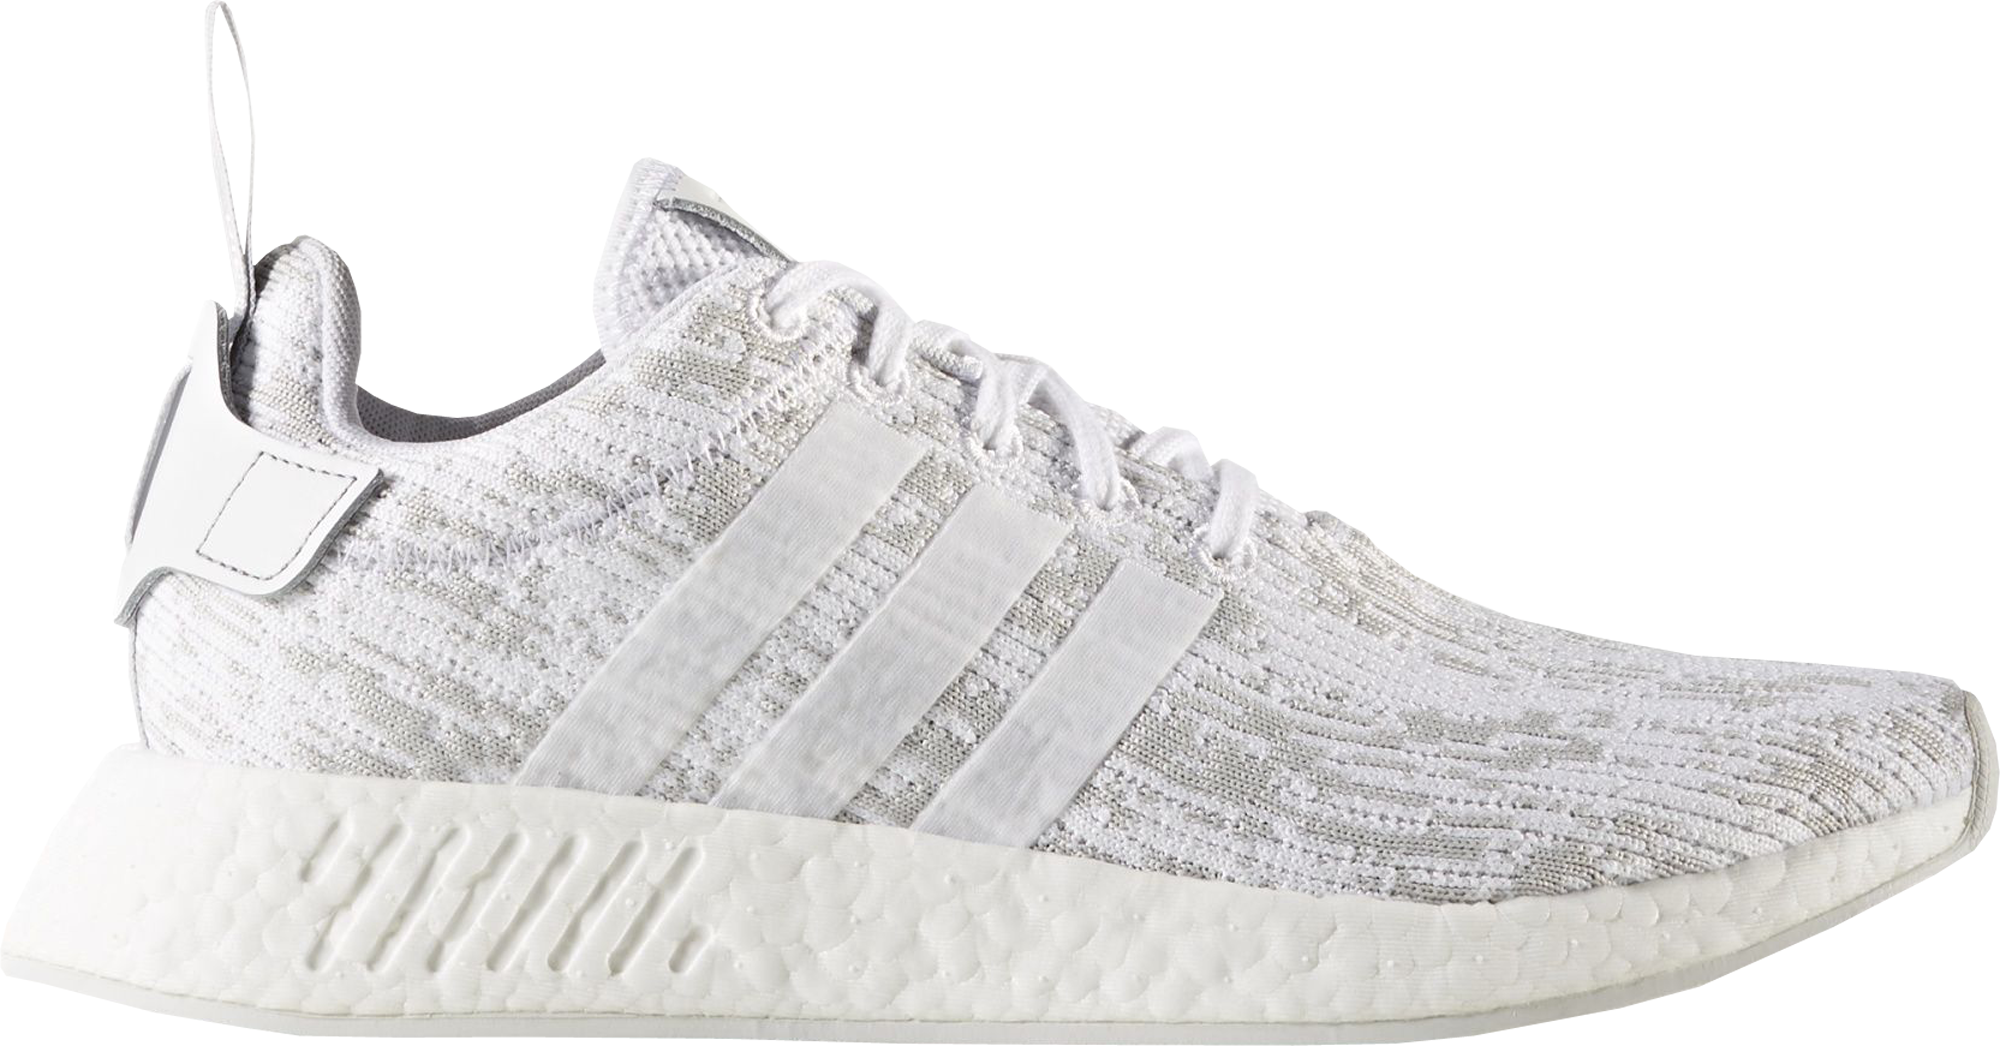 28720c373 adidas NMD R2 Women s Clear Granite Boost Primeknit